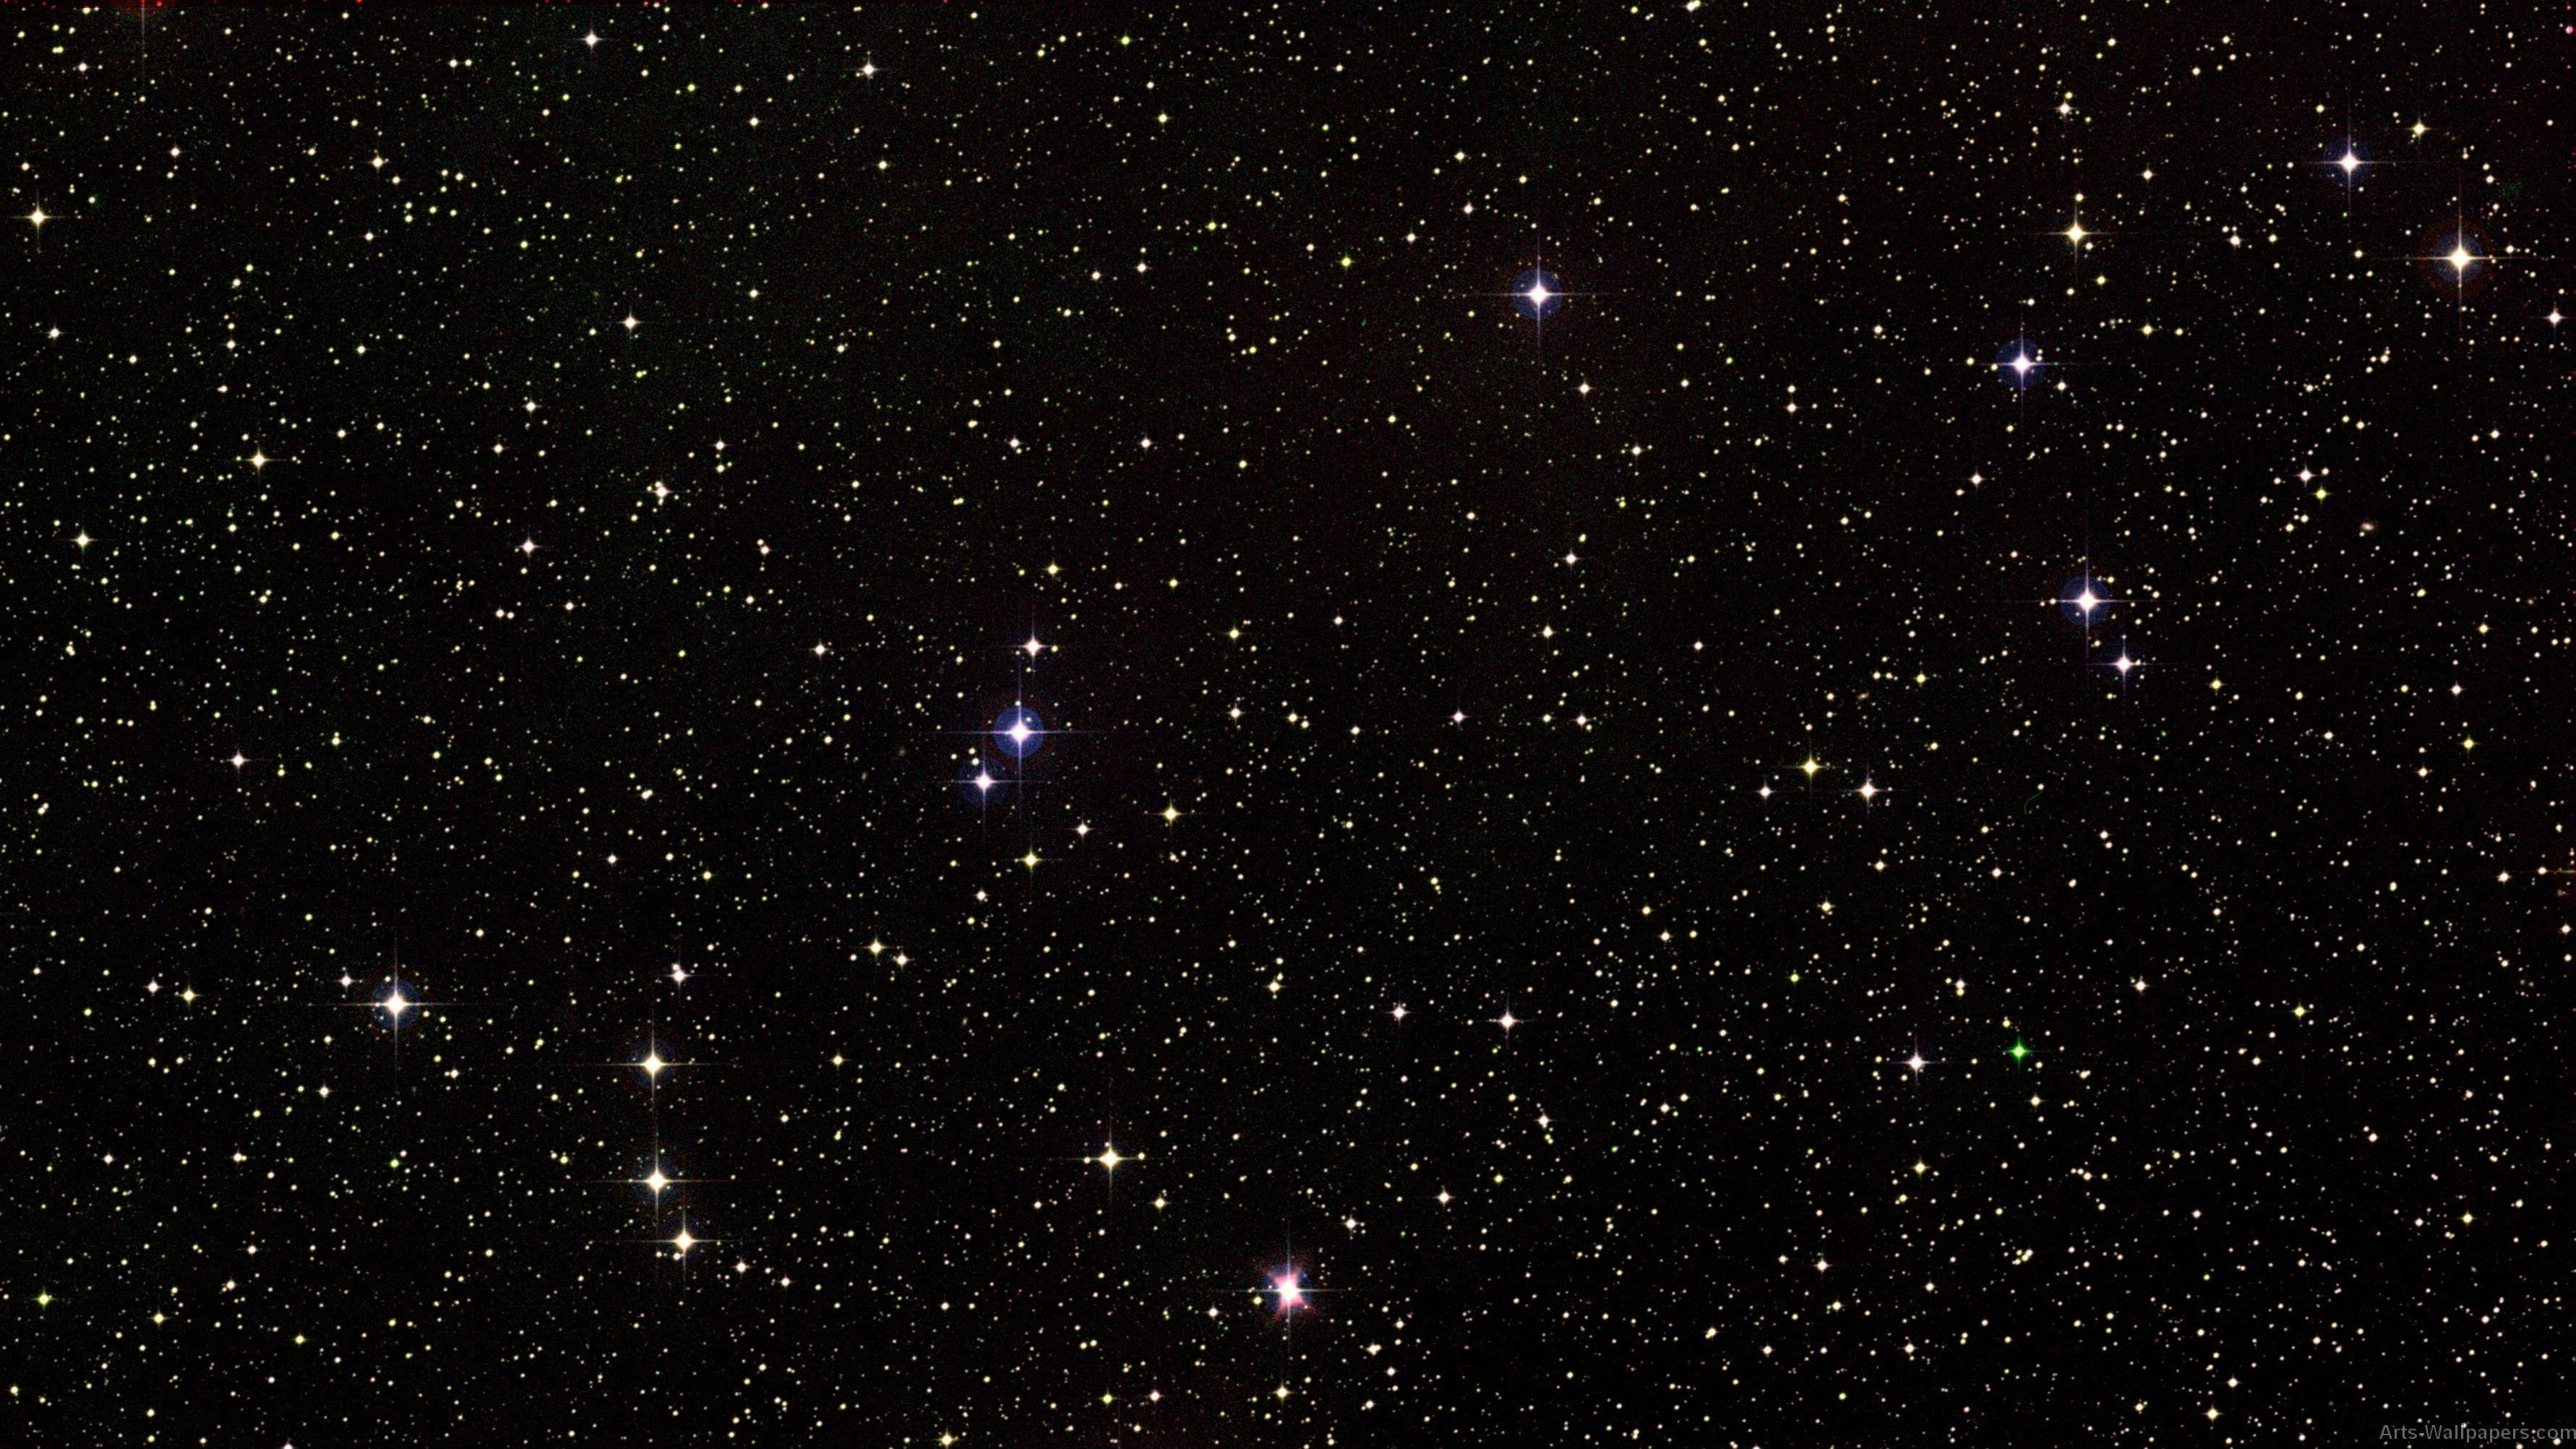 Space Stars Background 63 Images